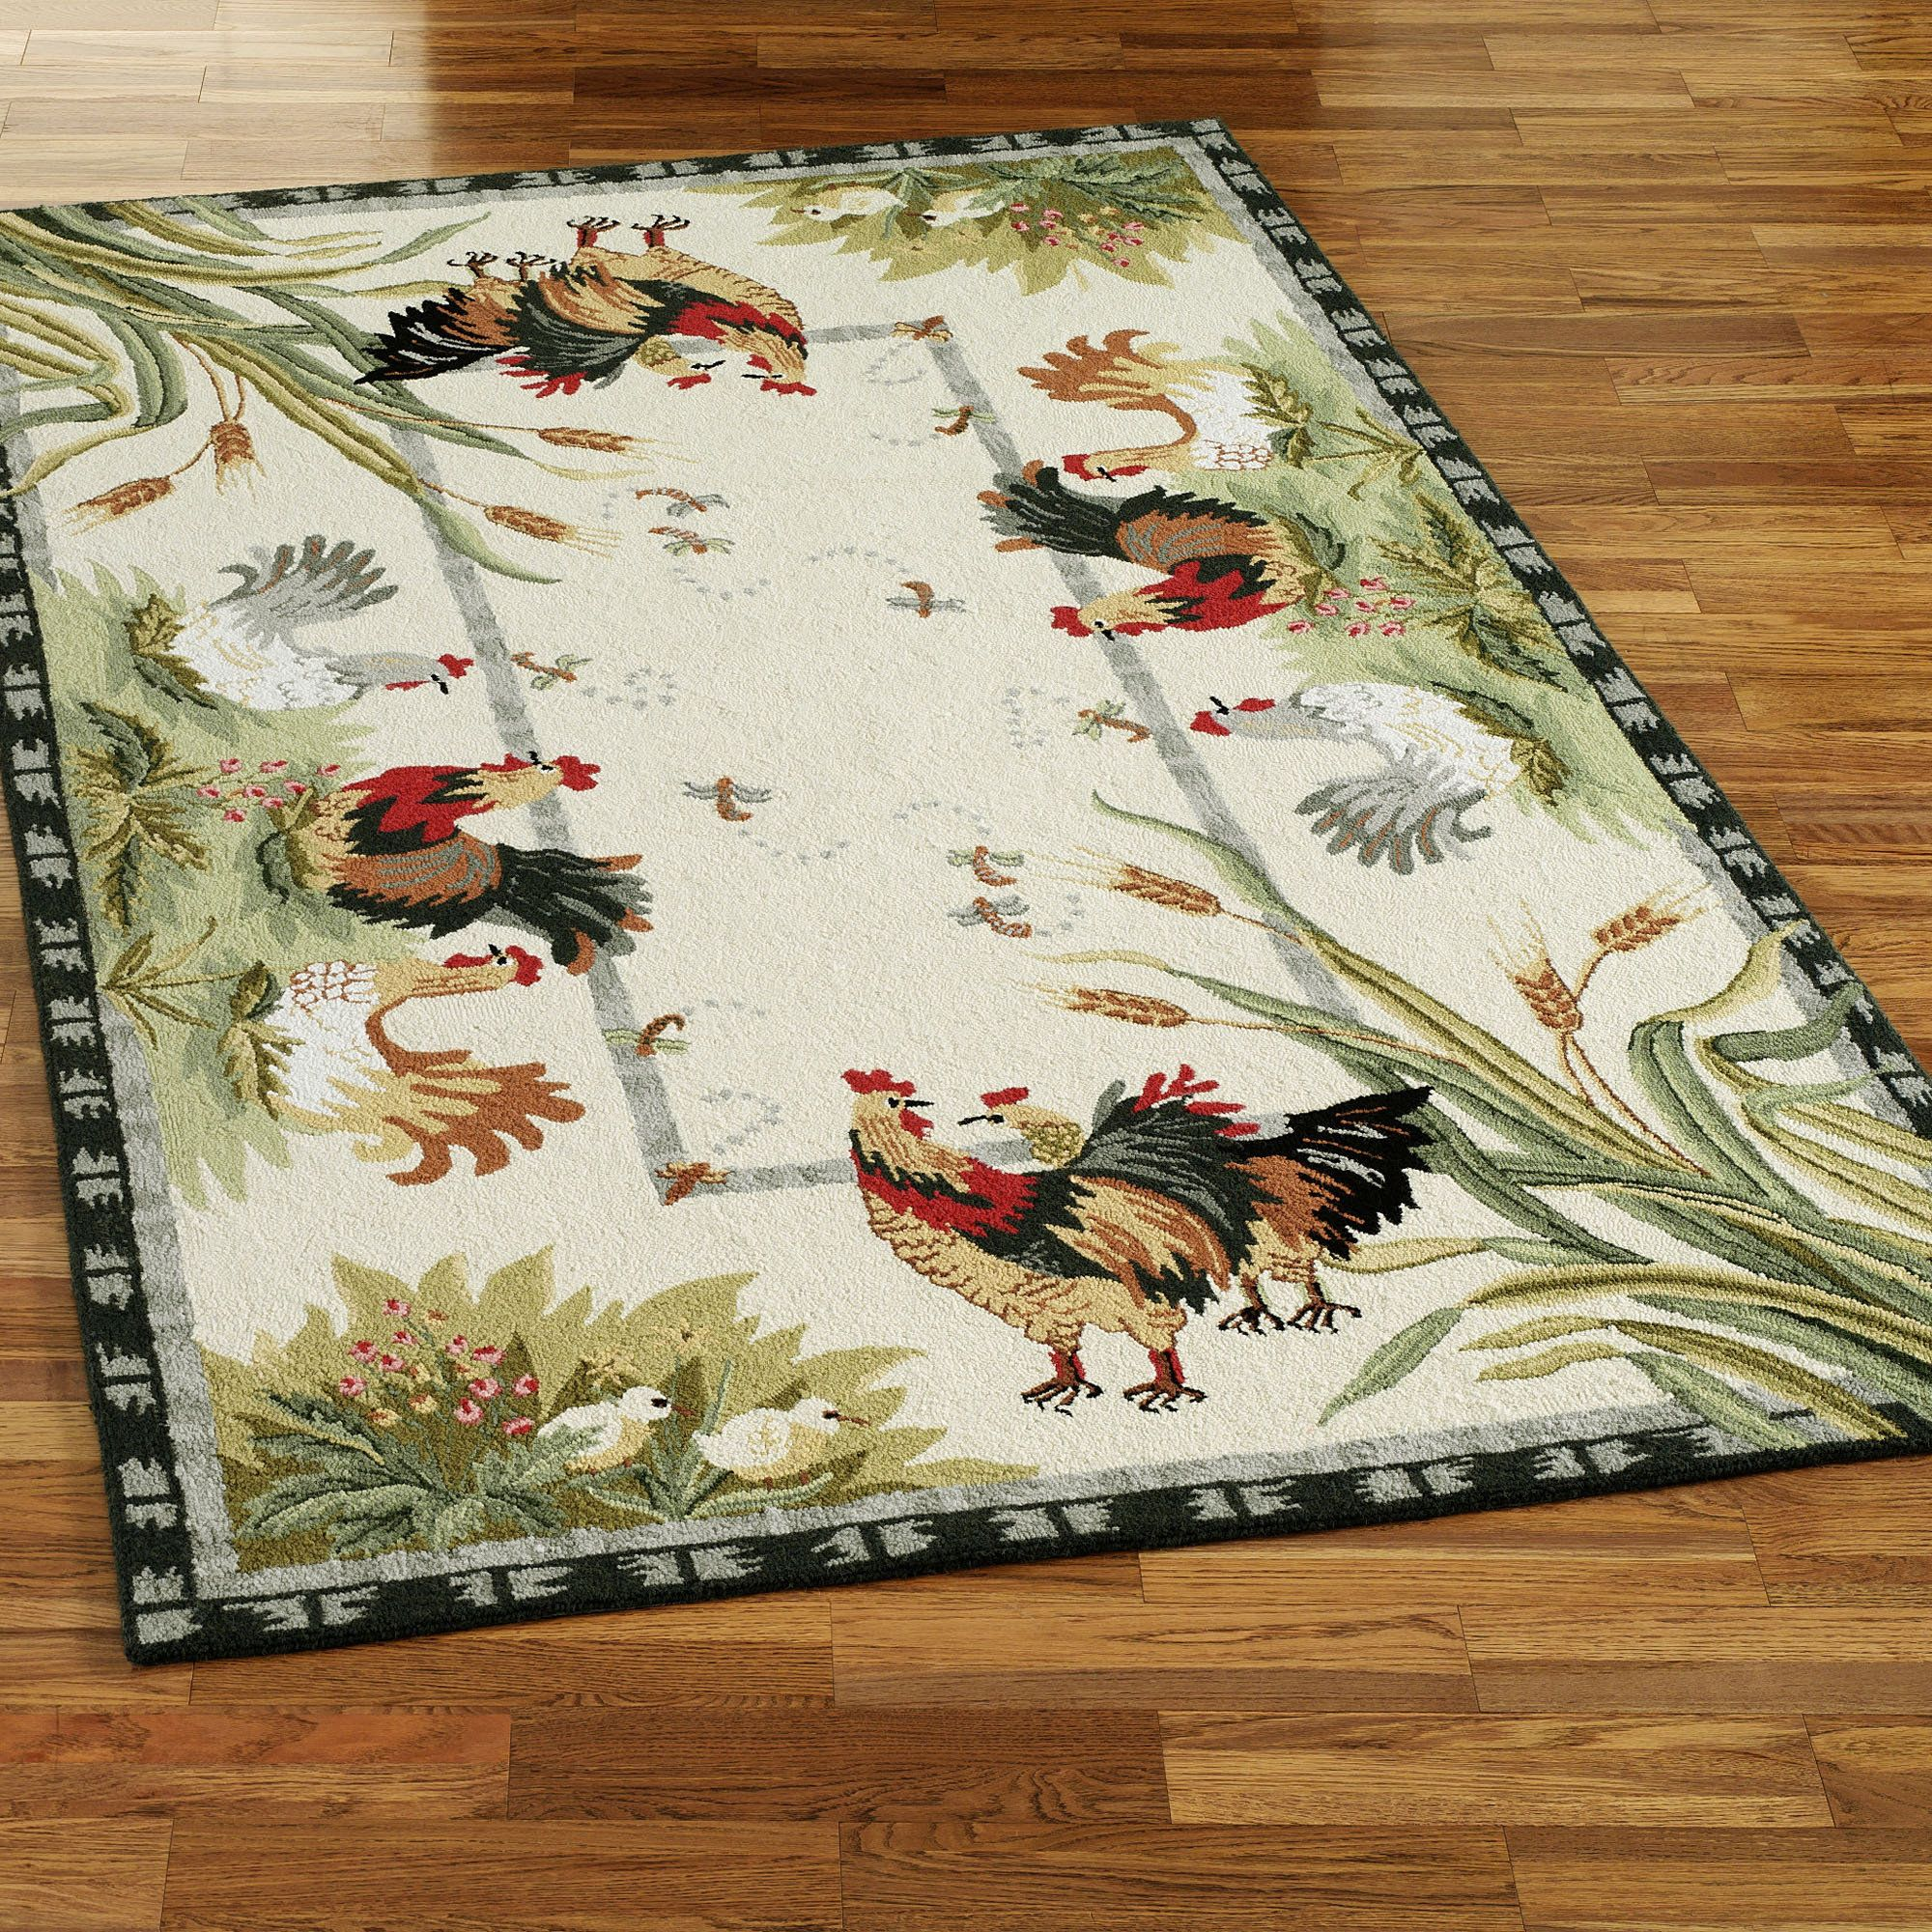 Rooster and Hens Area Rugs | Rooster kitchen decor, Rugs ...